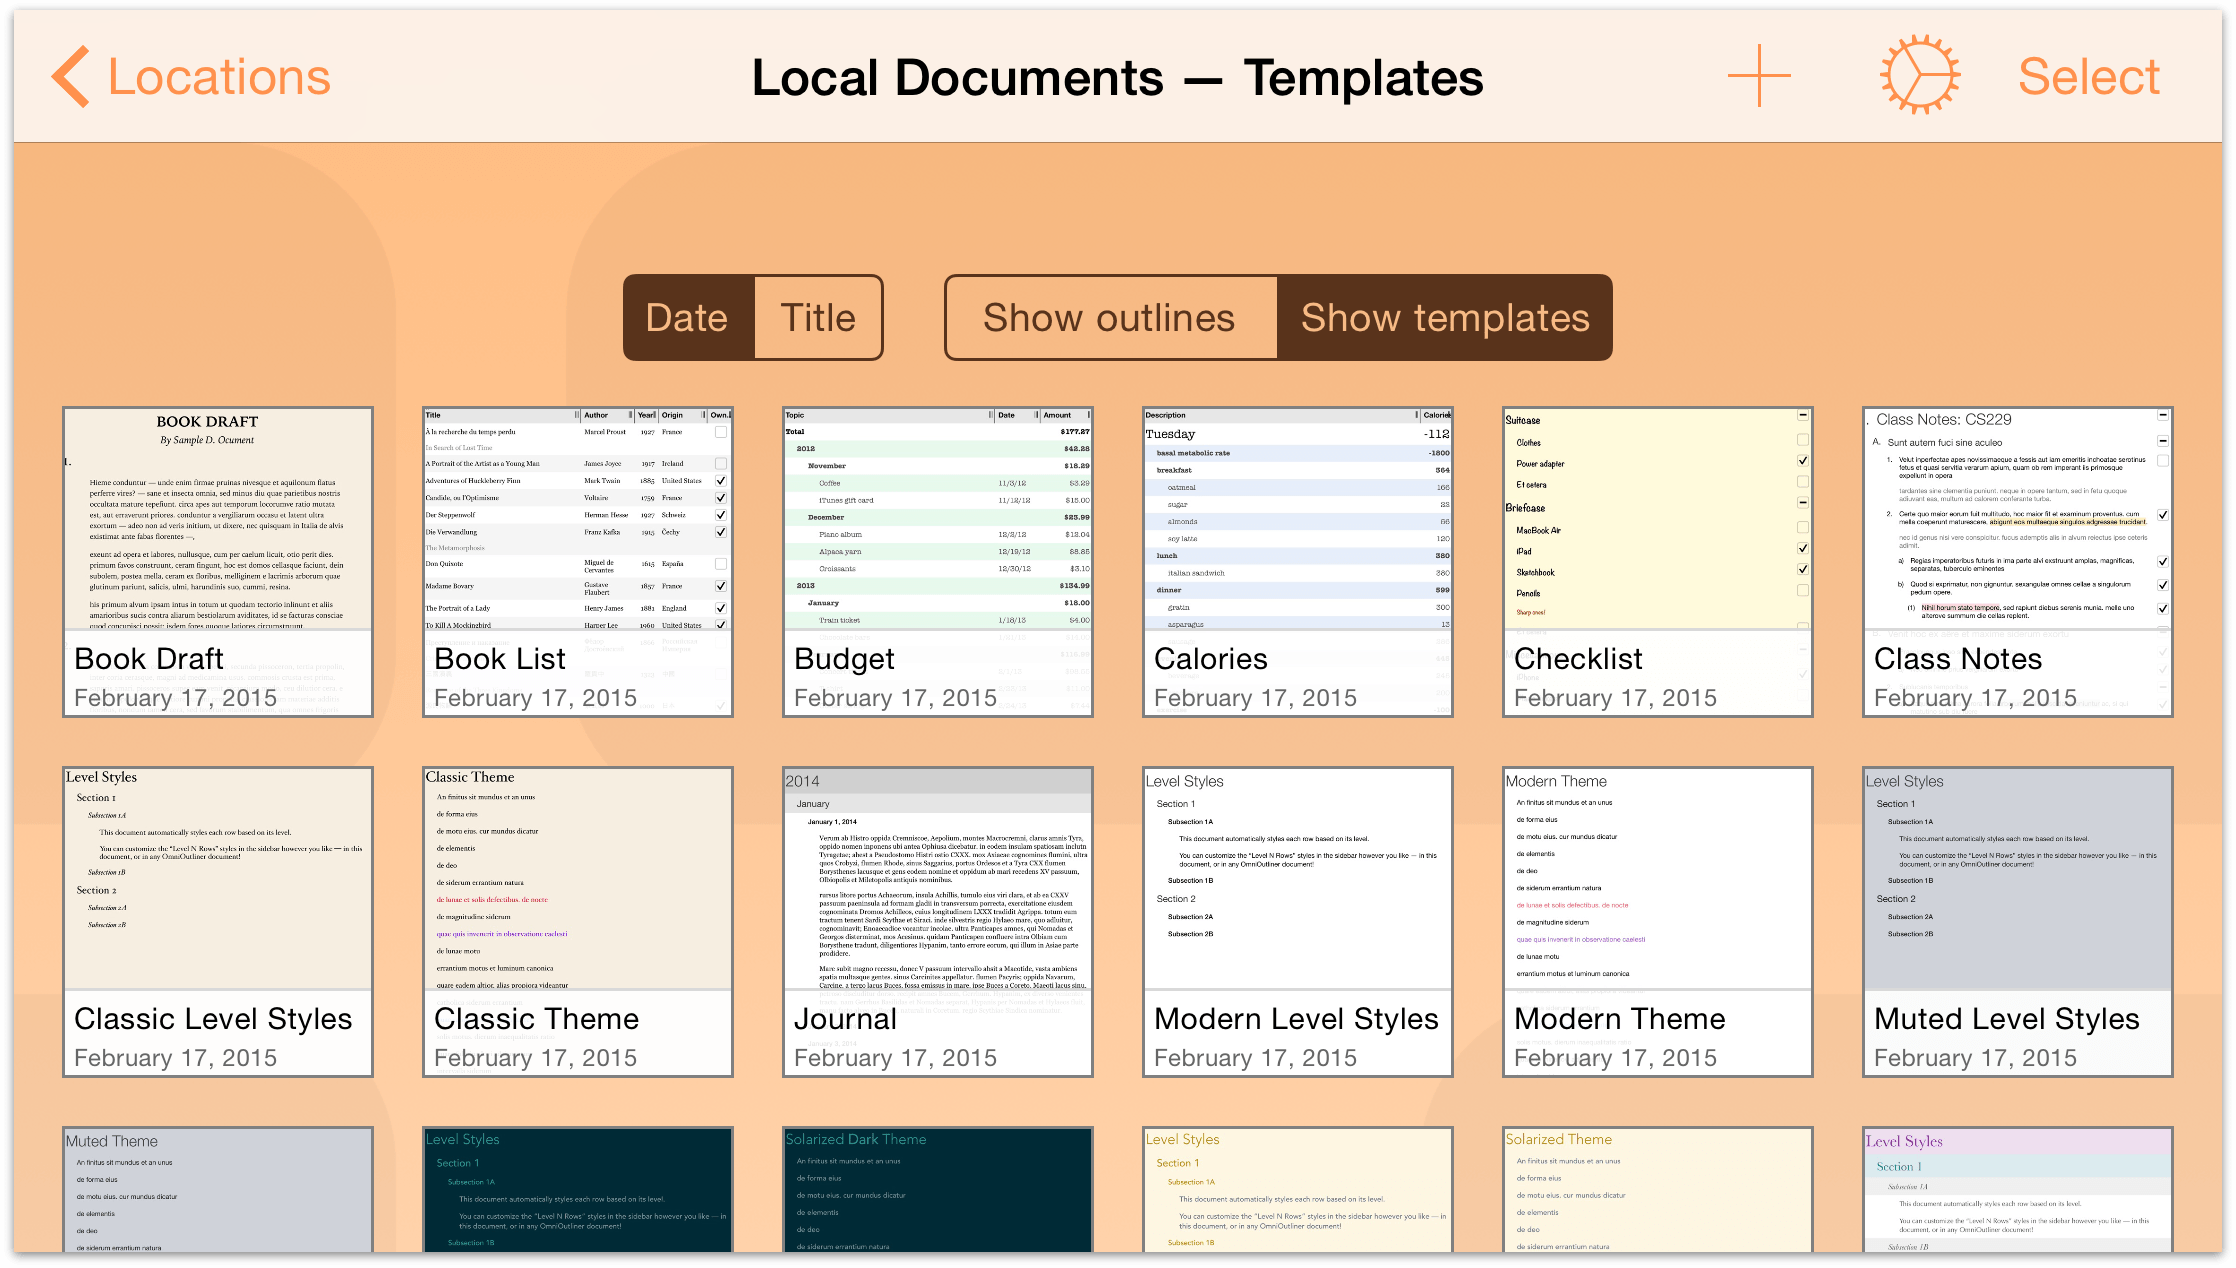 Omnioutliner 2 9 3 For Ios User Manual Managing Files With The